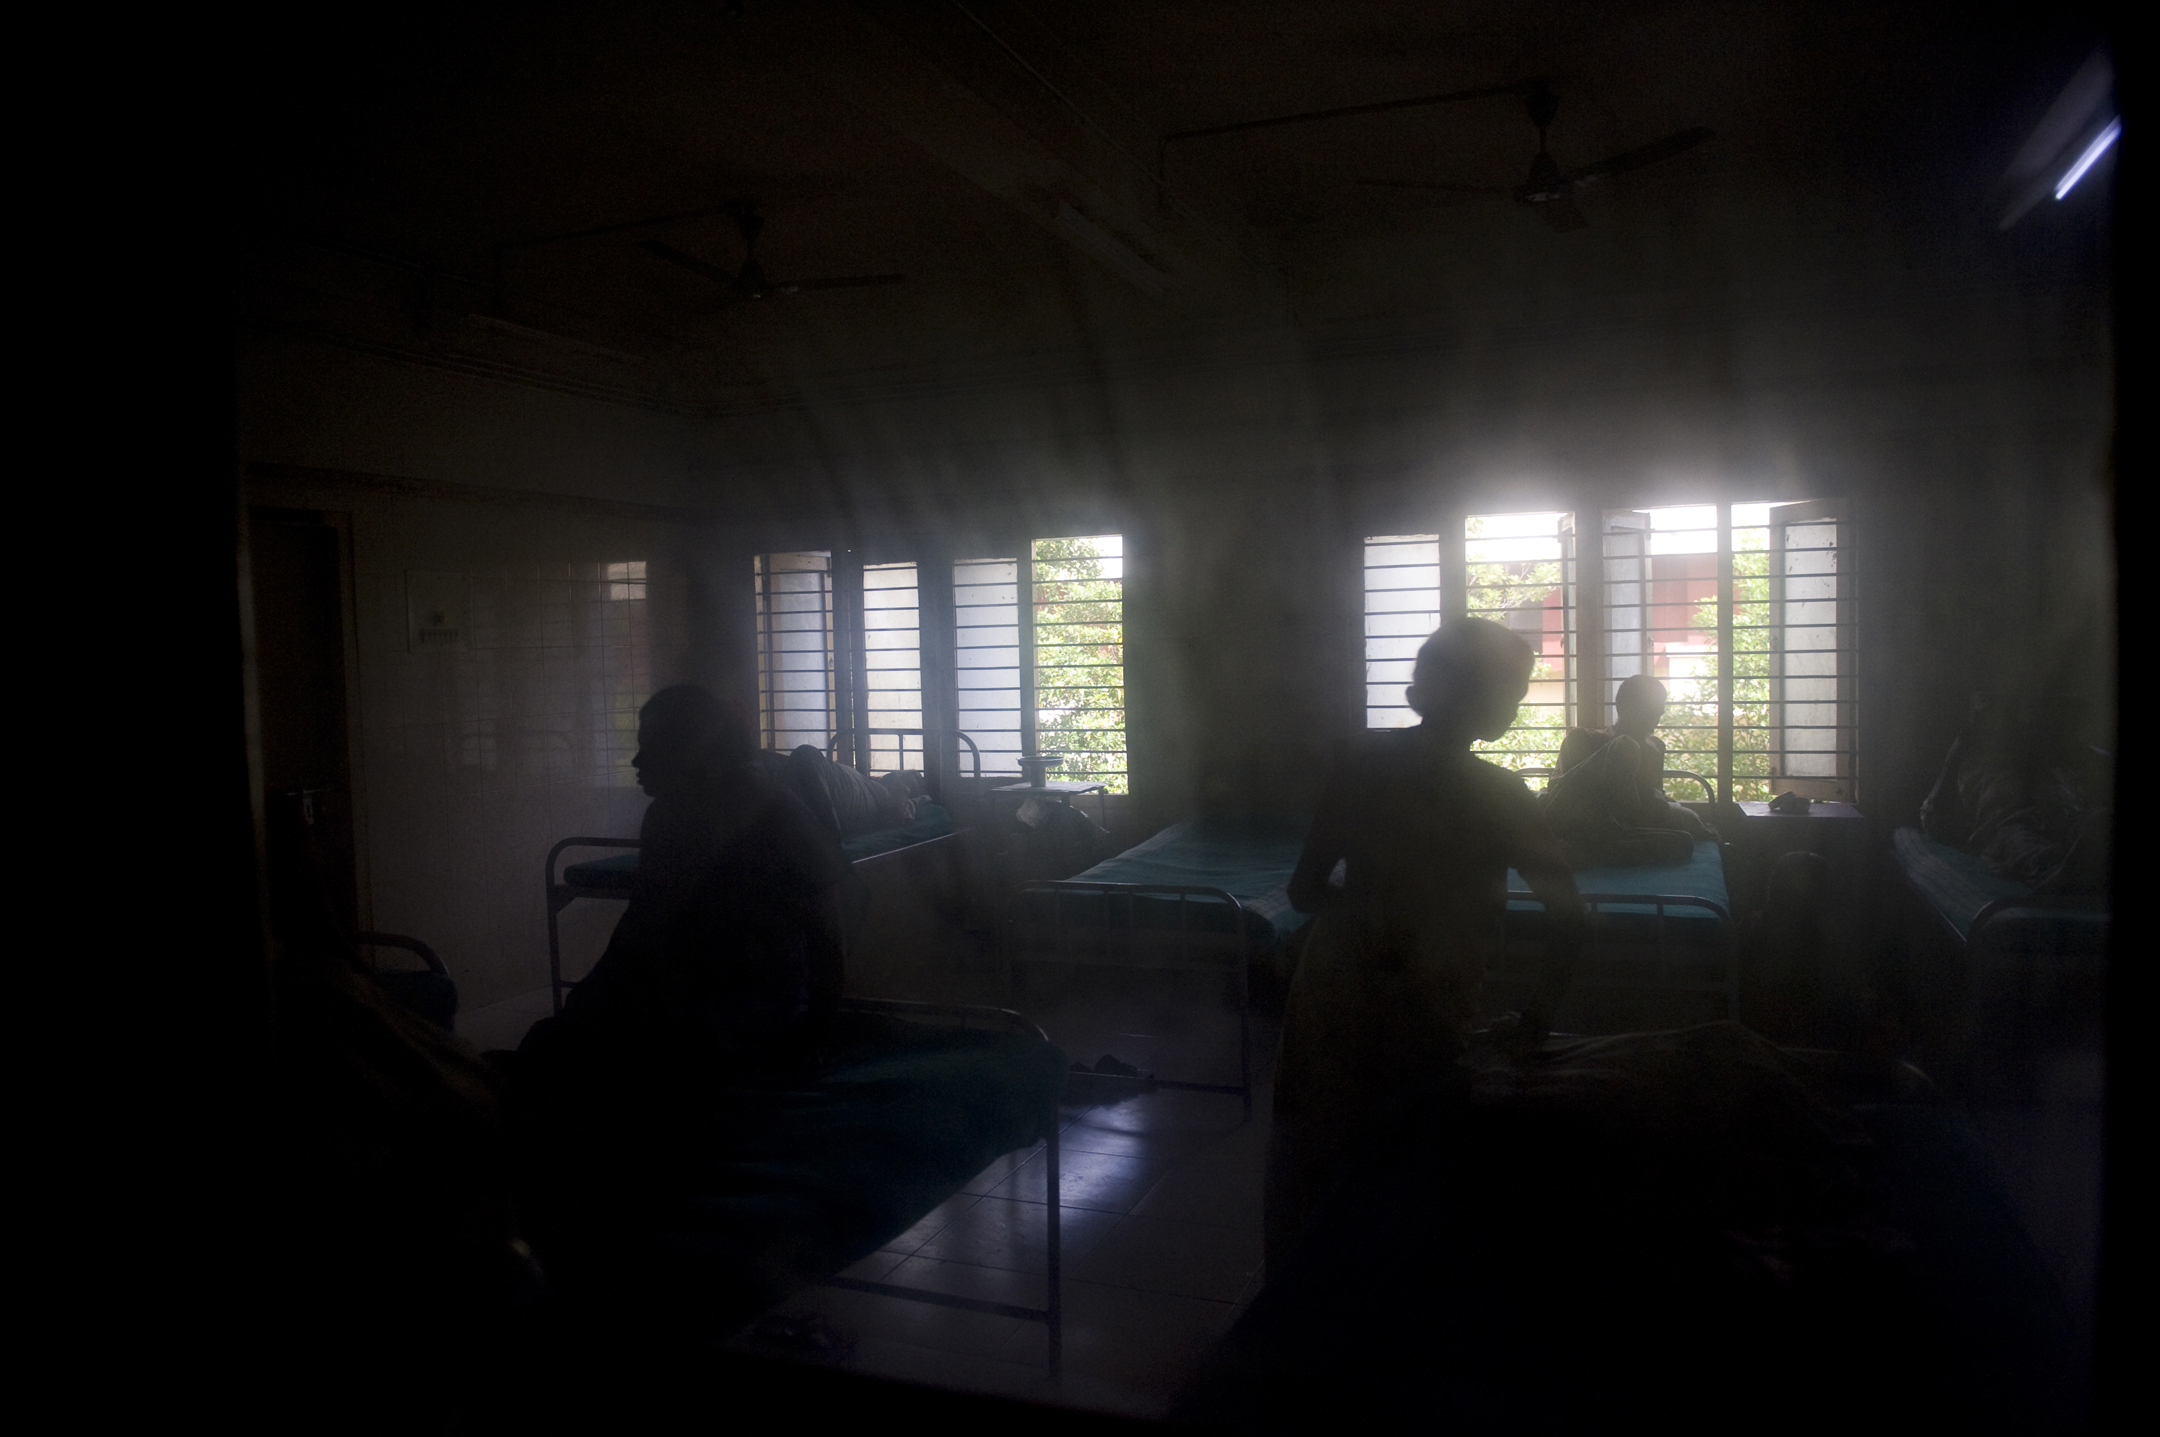 Hepatitis+ patients at the Lok Nayak Hospital in Delhi, India.